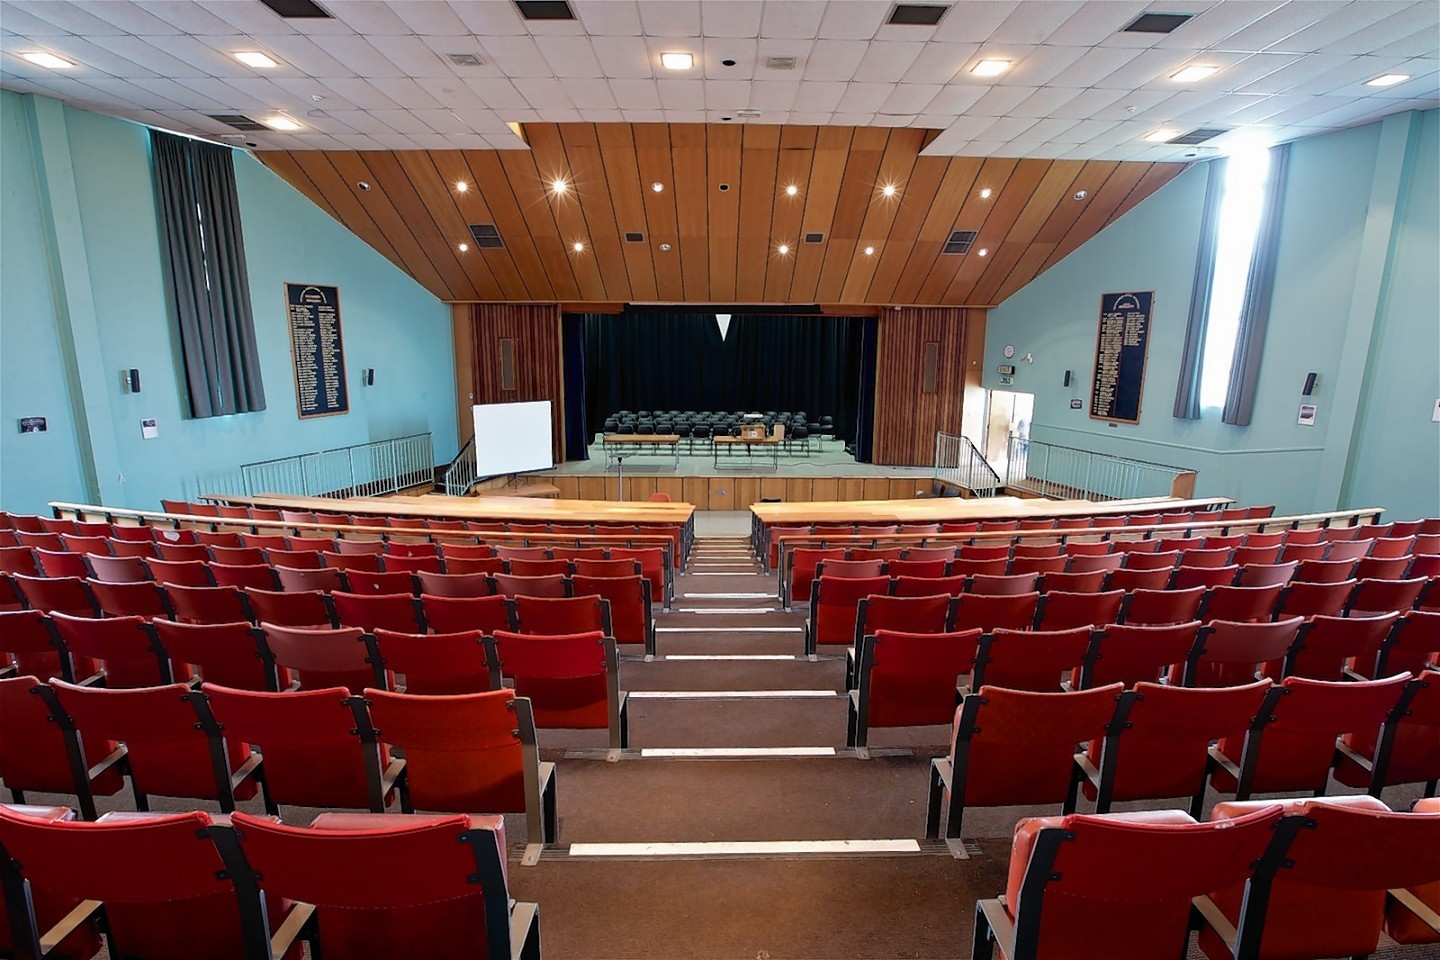 Inverness Royal Academy theatre room 1977-2016